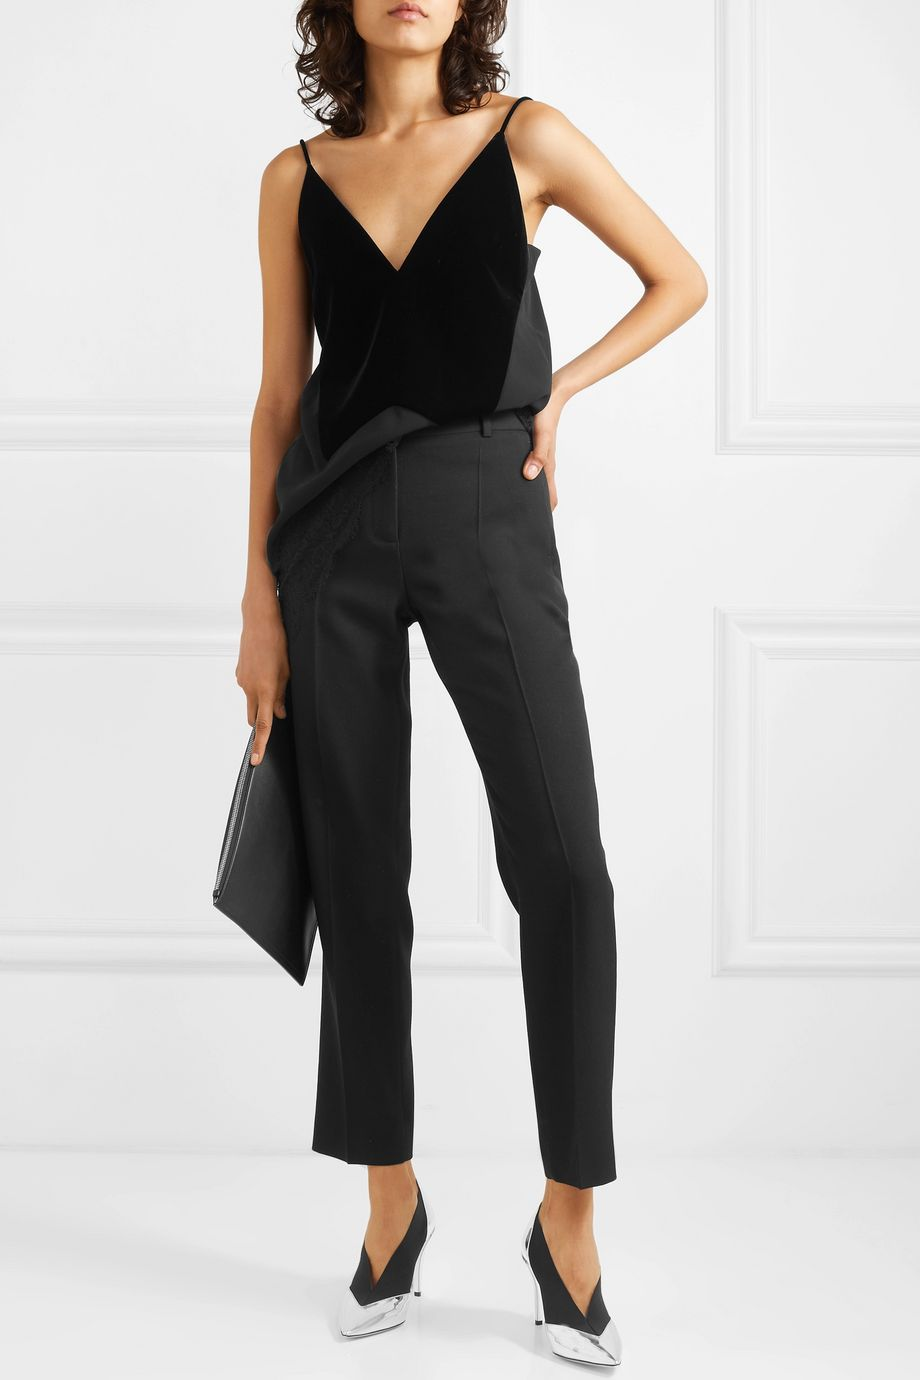 Givenchy Velvet, crepe and lace camisole